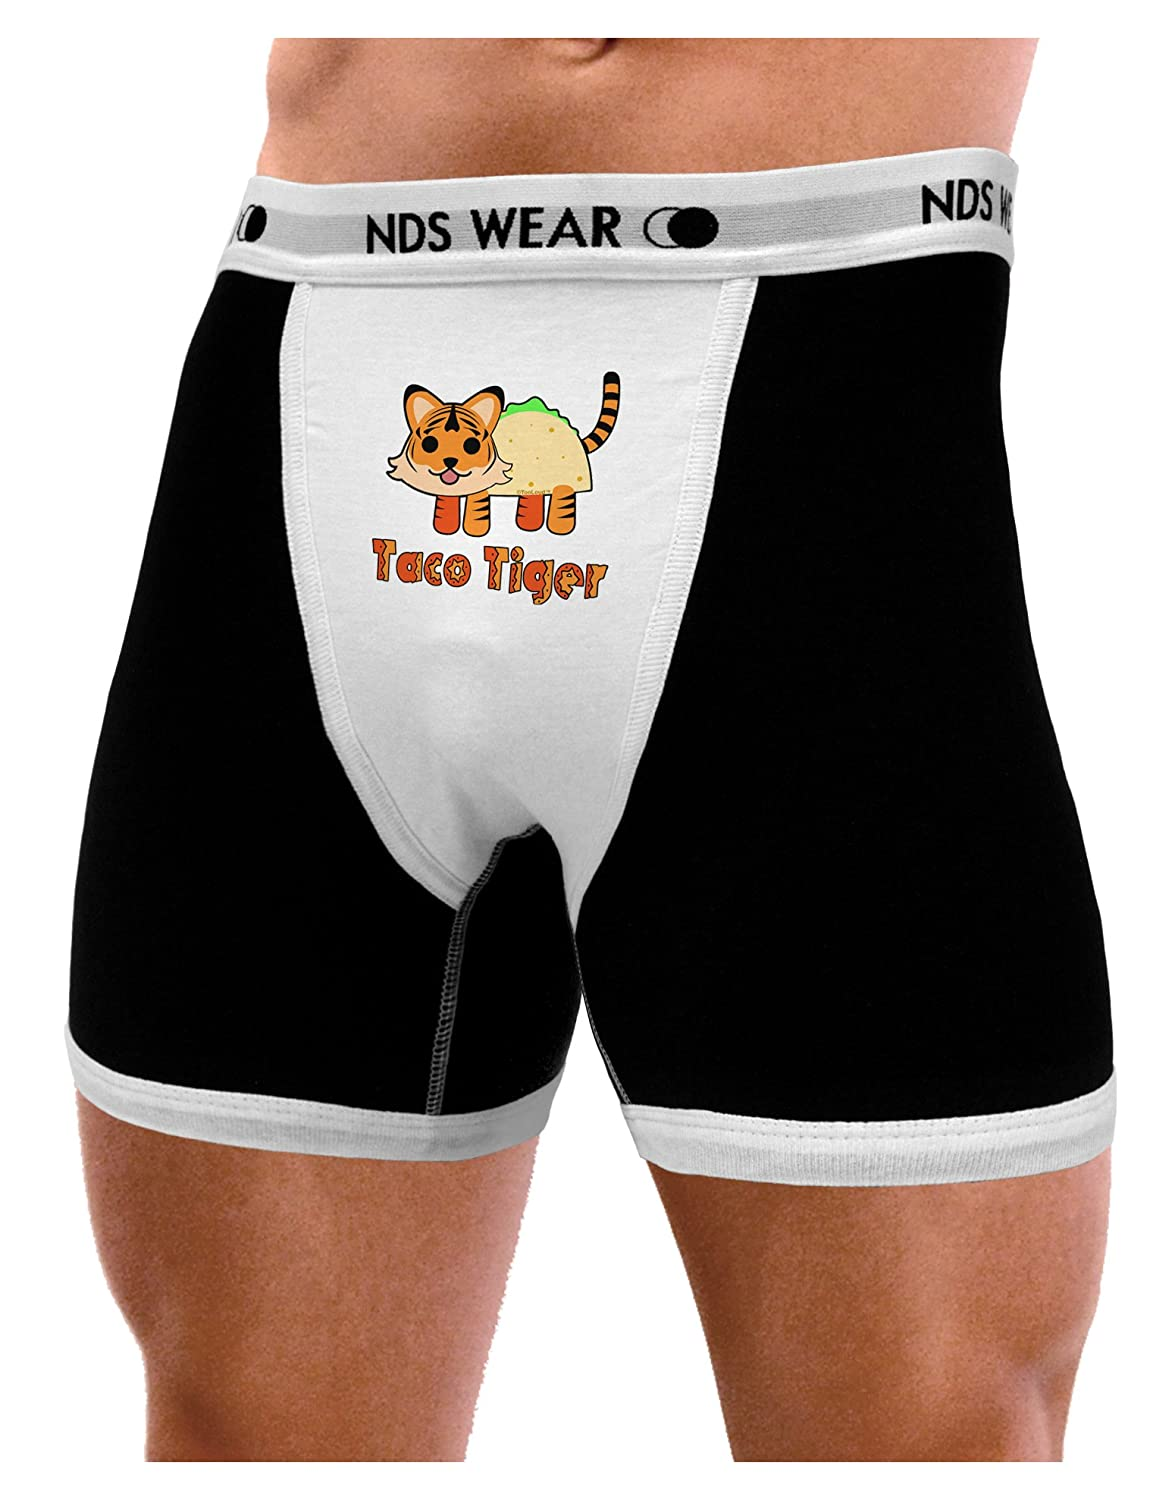 NDS Wear TooLoud Cute Taco Tiger Text Mens Boxer Brief Underwear